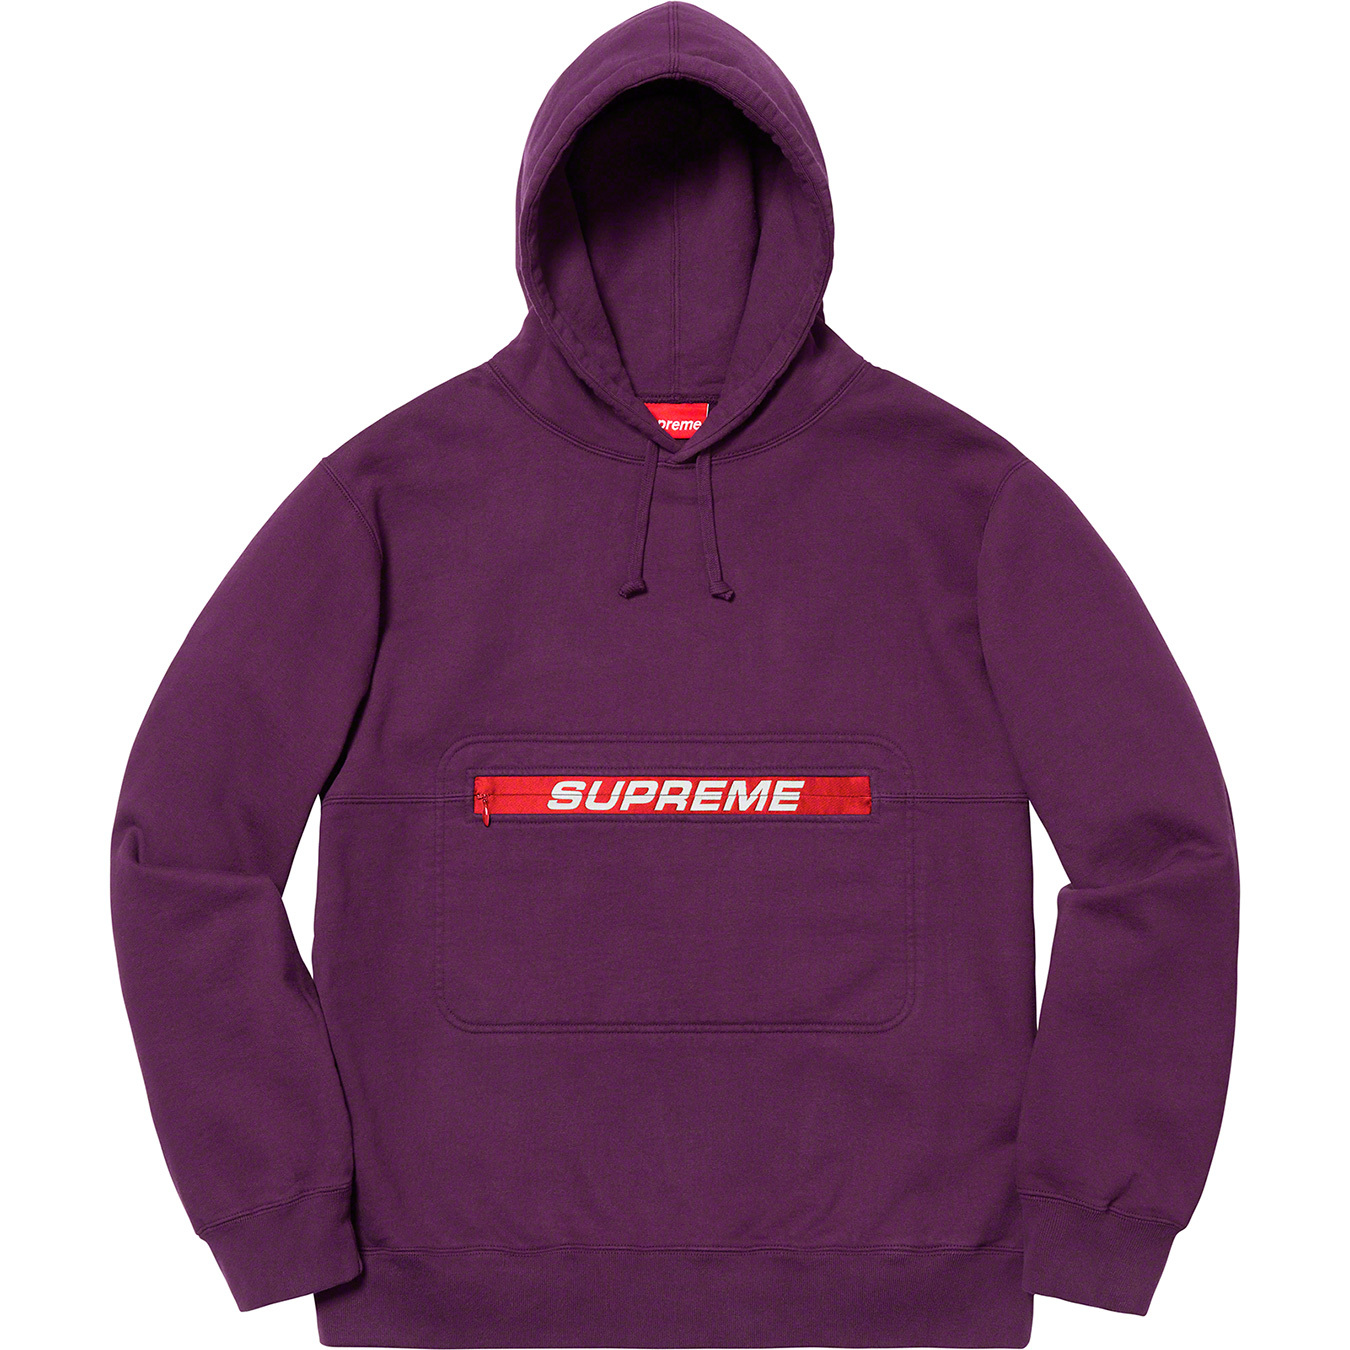 supreme-19ss-spring-summer-zip-pouch-hooded-sweatshirt